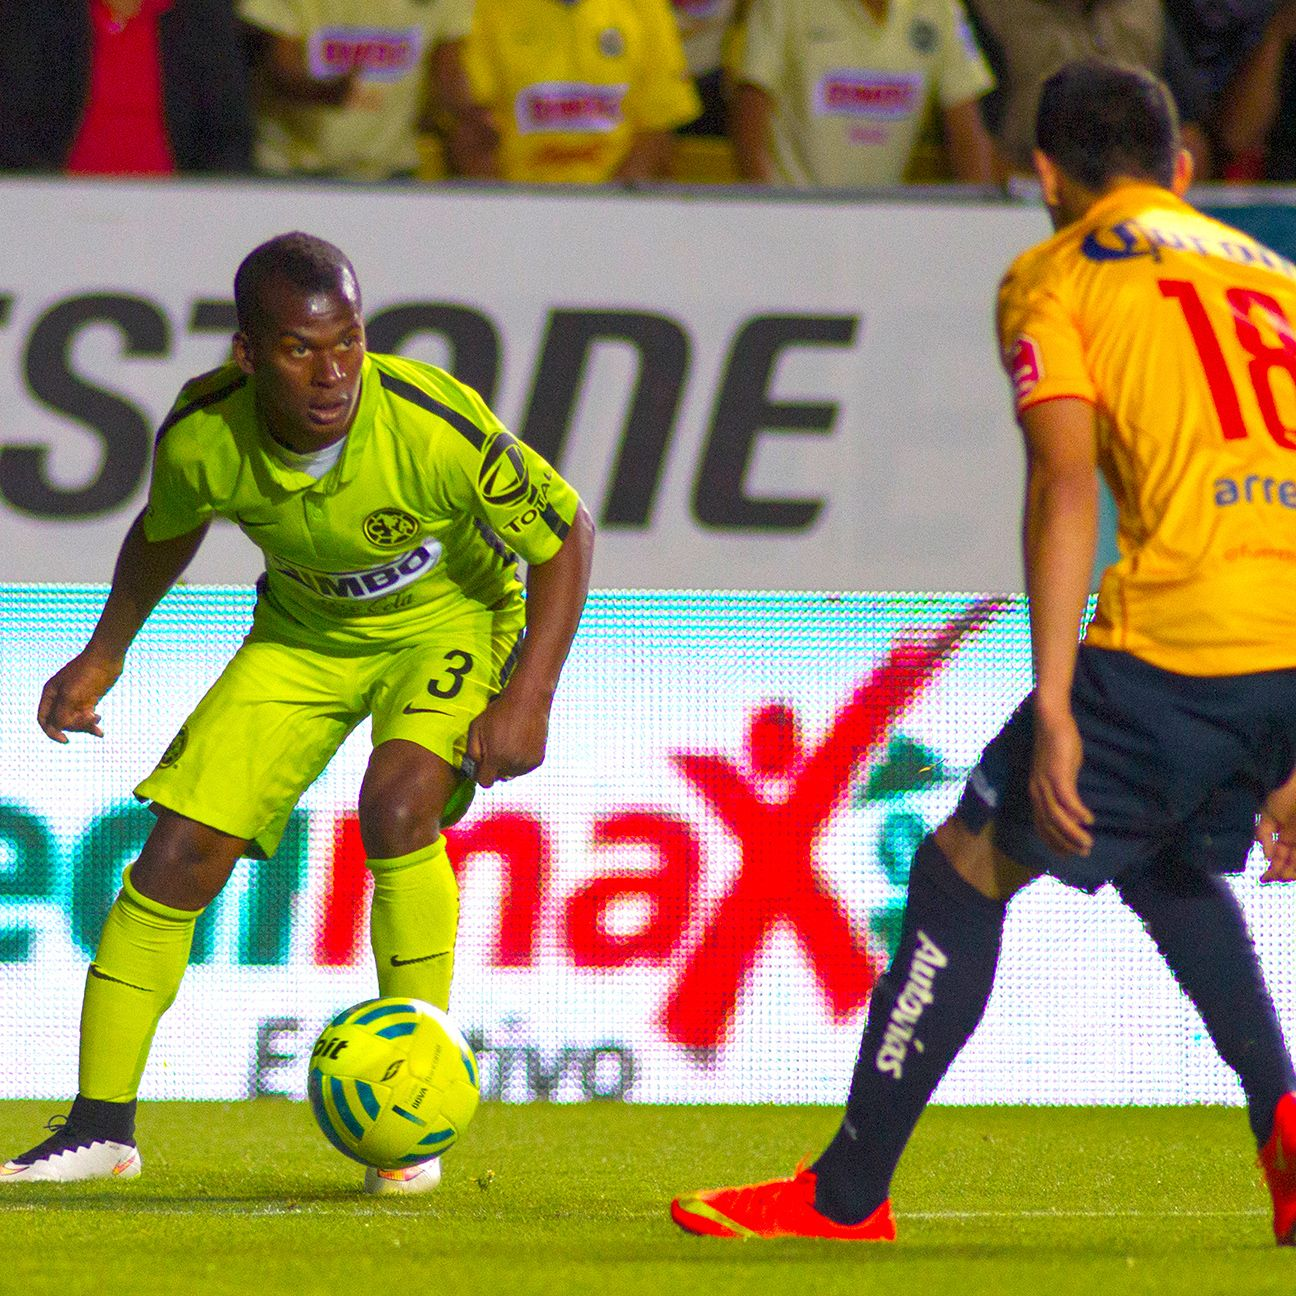 Darwin Quintero and Club America found the going tough against last-place Morelia.